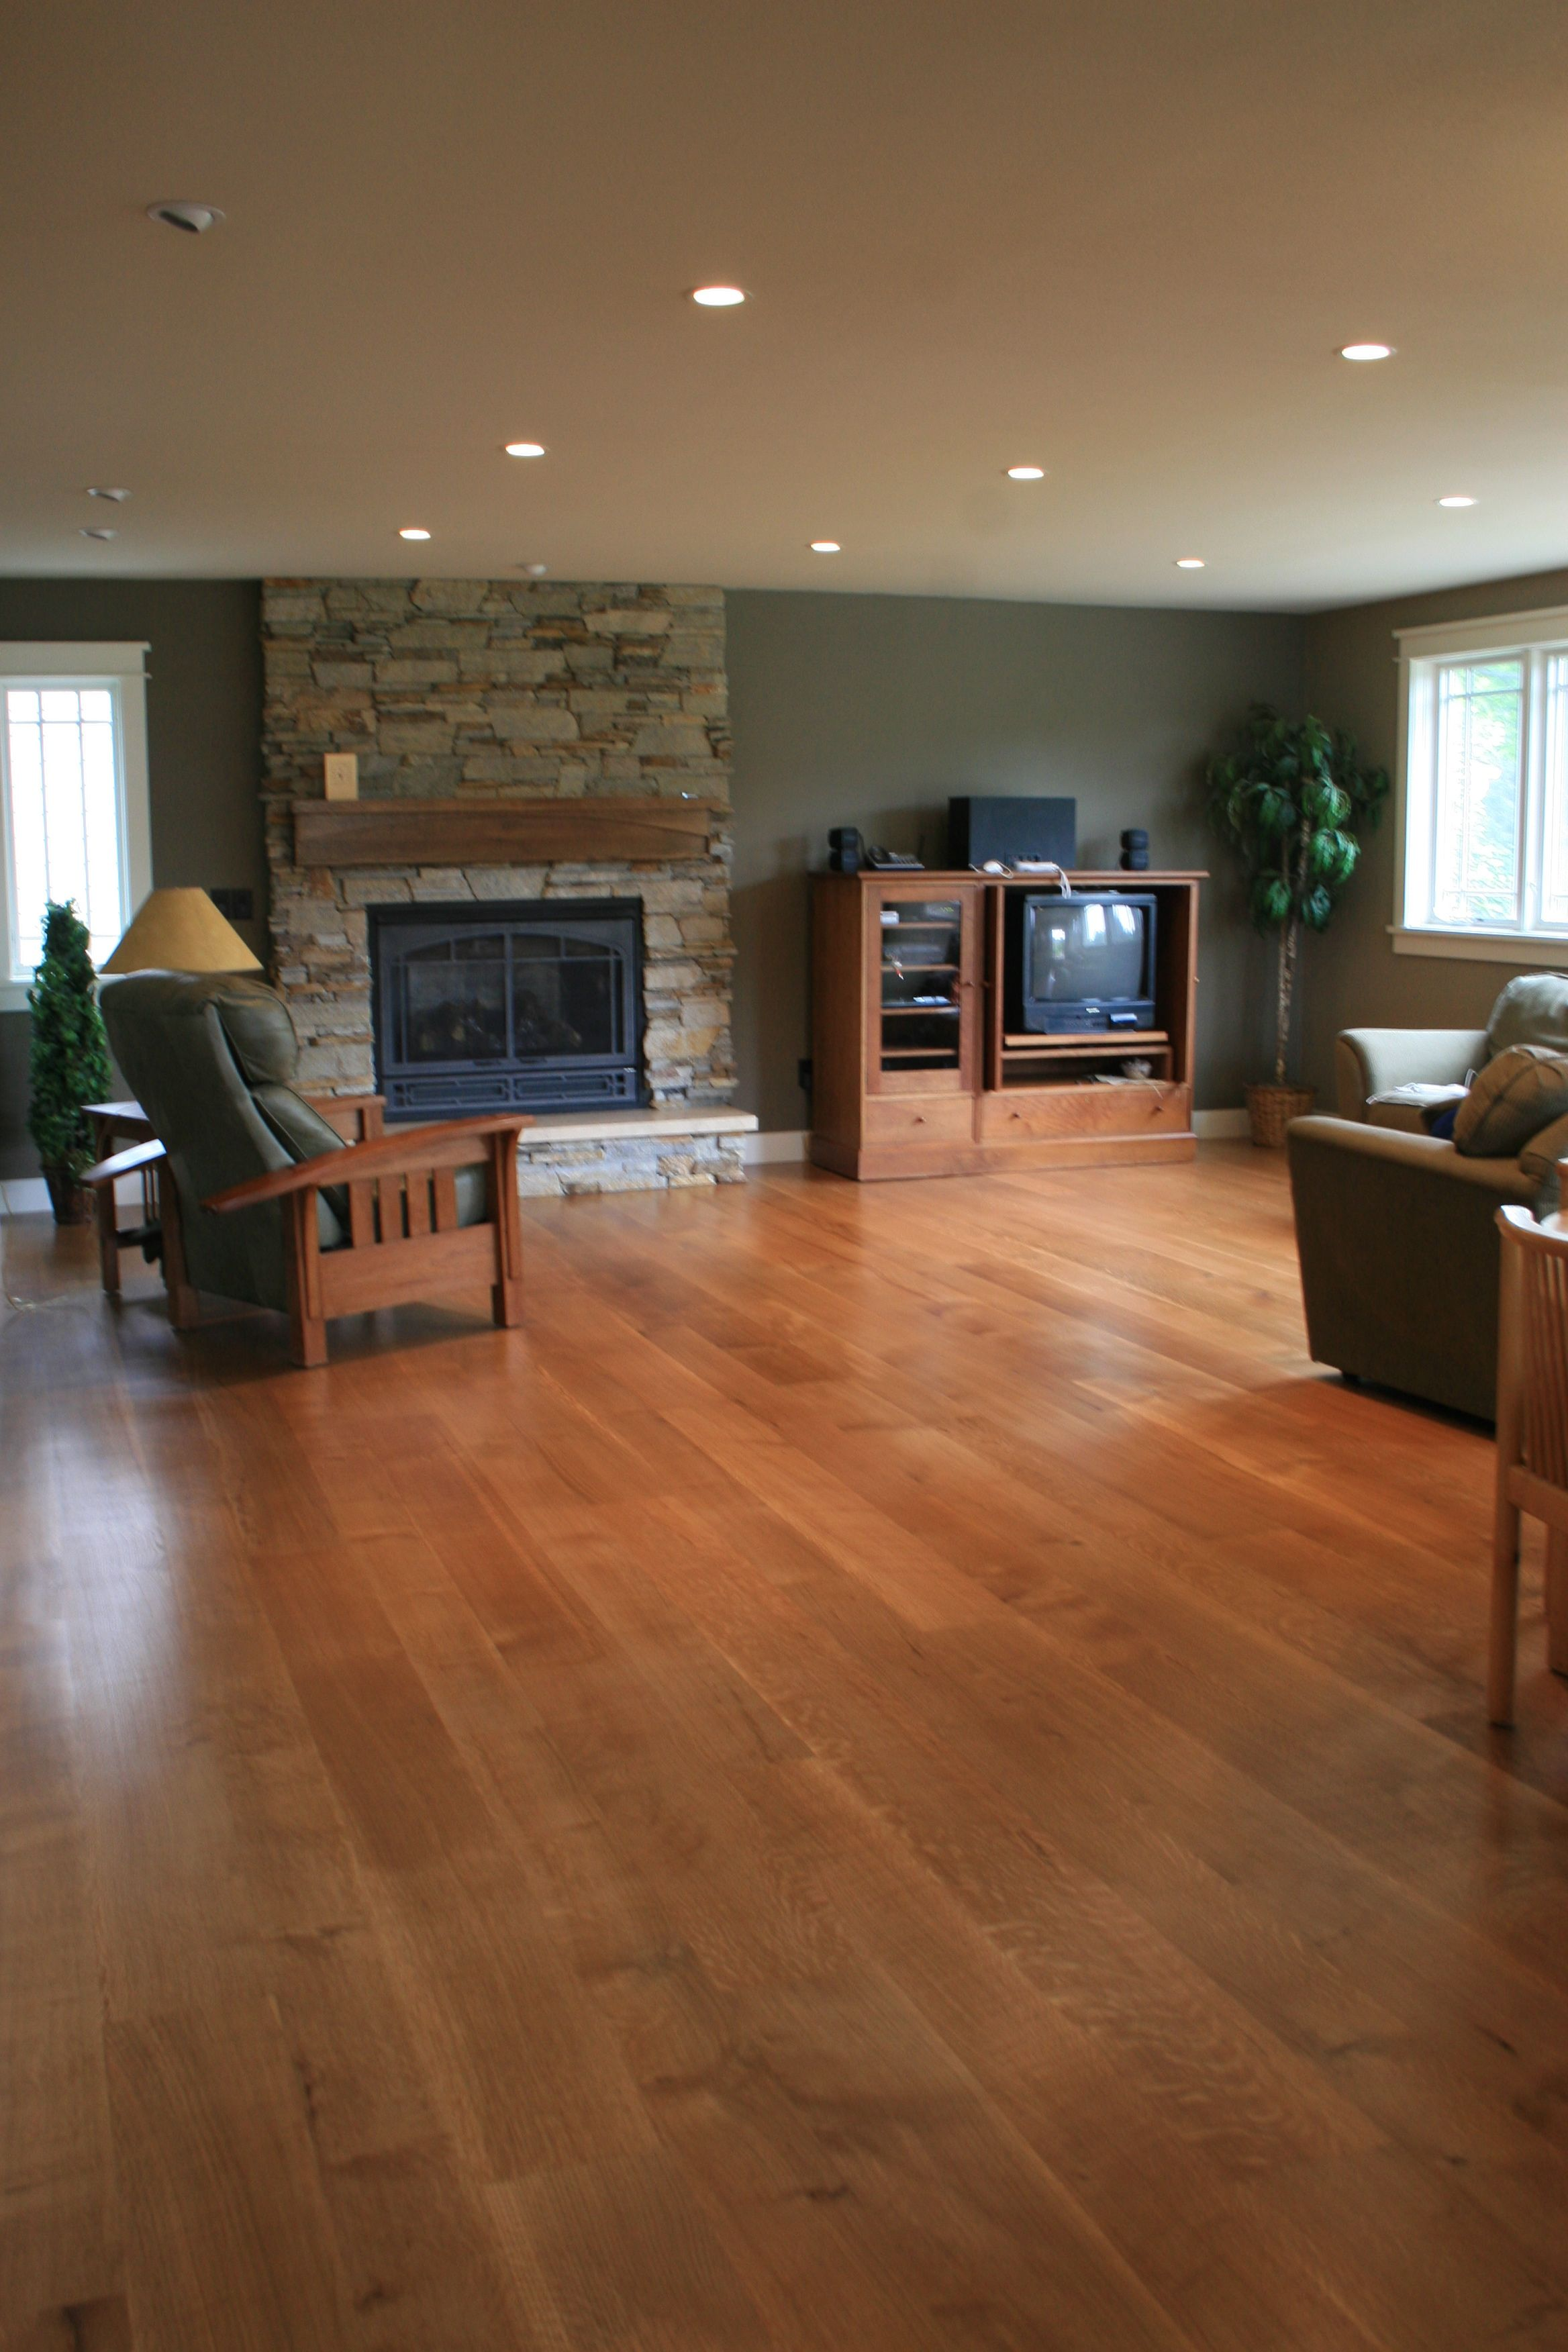 Wide plank white oak flooring by magnus anderson hardwood floors boulder co www magnusandersonhardwood com